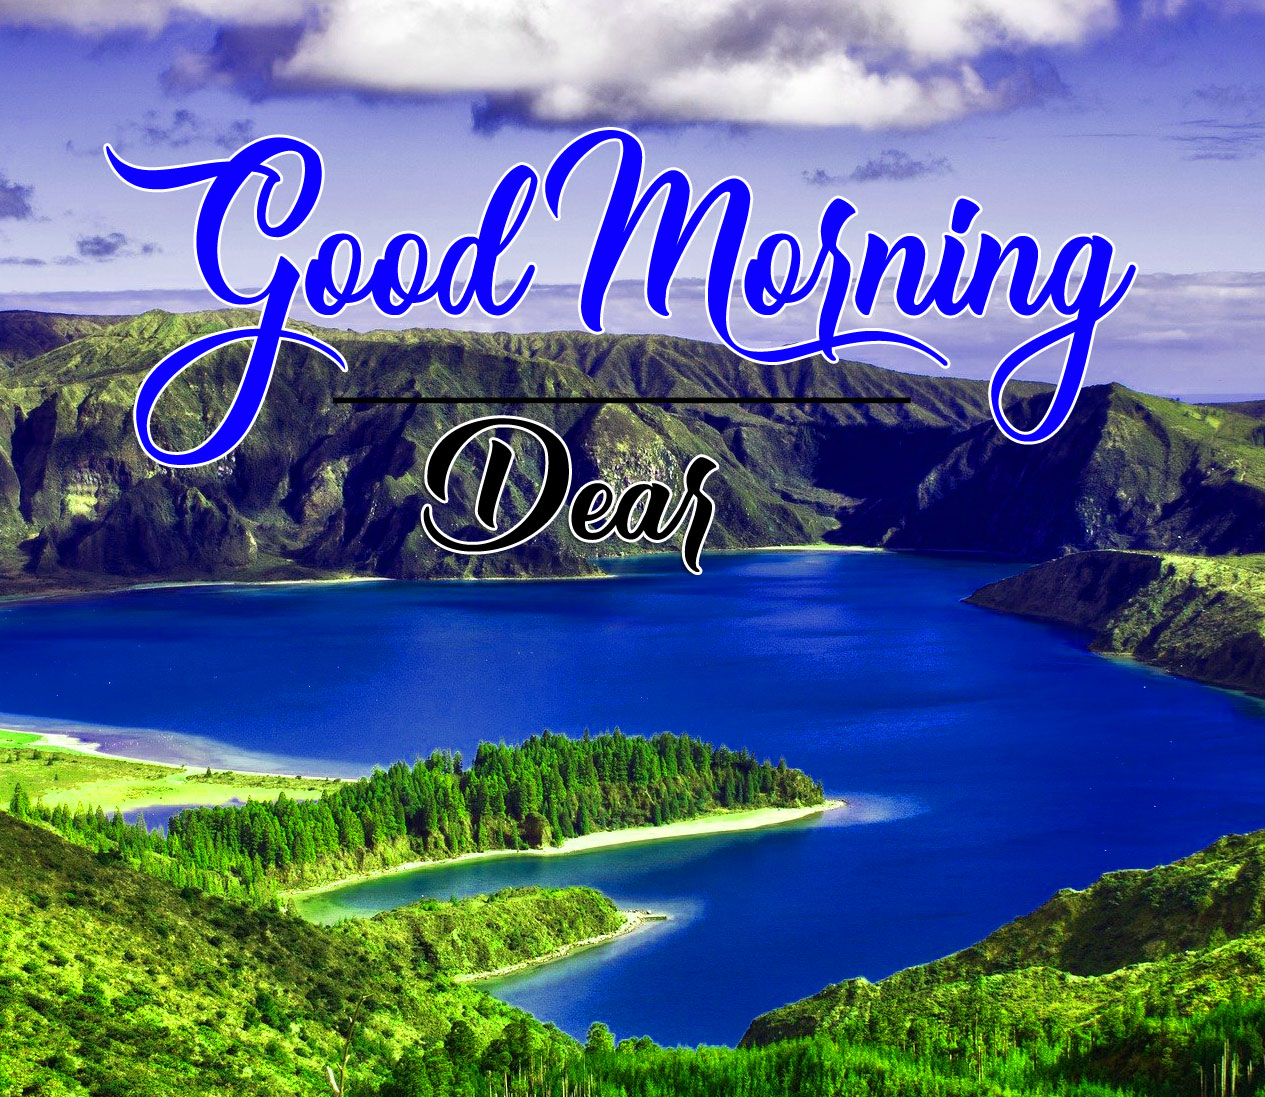 Free Best HD good morning Whatsapp dp Images 2